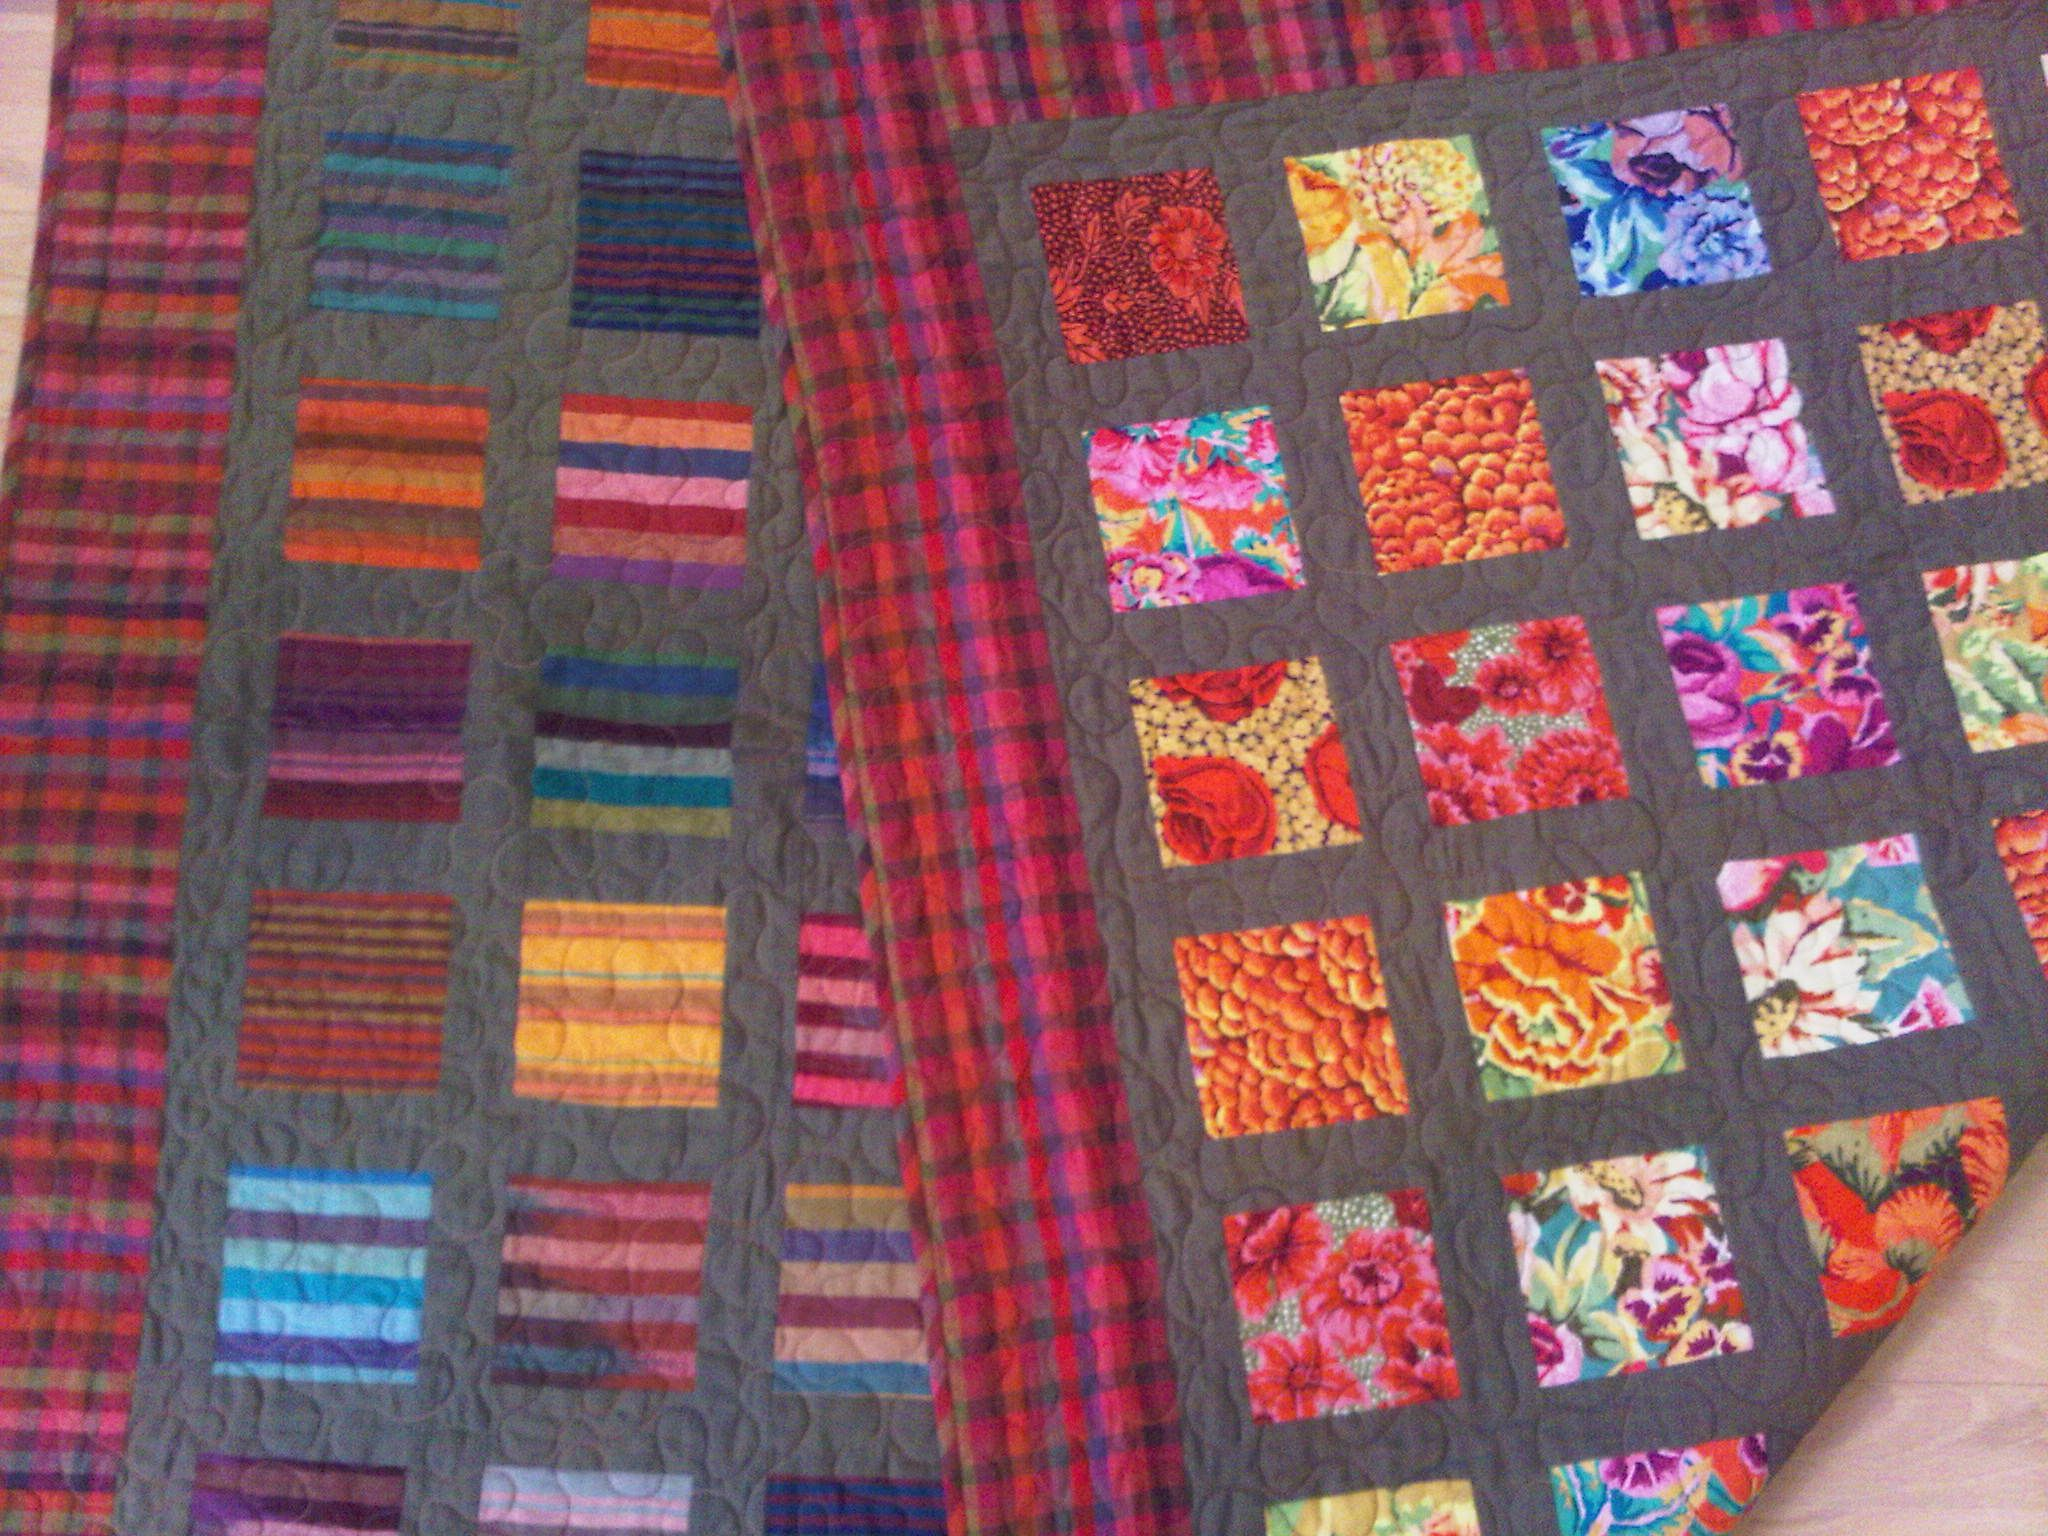 Double sided quilt with Kaffe Fassett/Philip Jacobs florals and ... : double sided quilt - Adamdwight.com